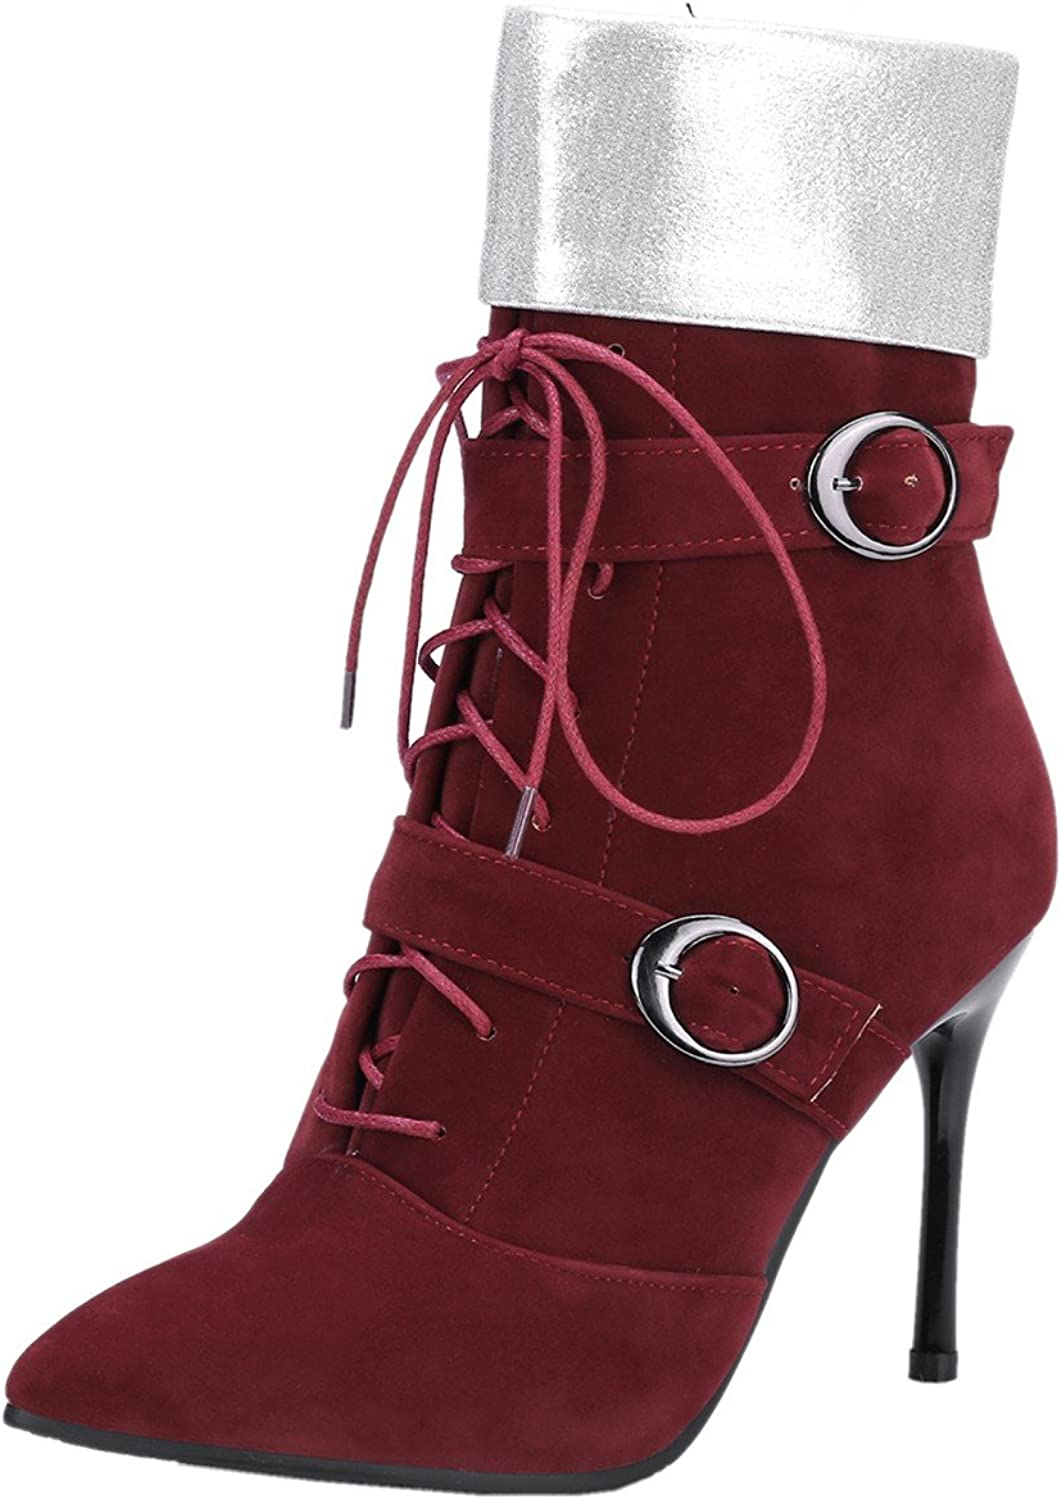 Rongzhi Womens Ankle Boots Stilettos Pumps Heels Lace Up Zip Buckle Strap Dress Suede Booties Pointed Toe